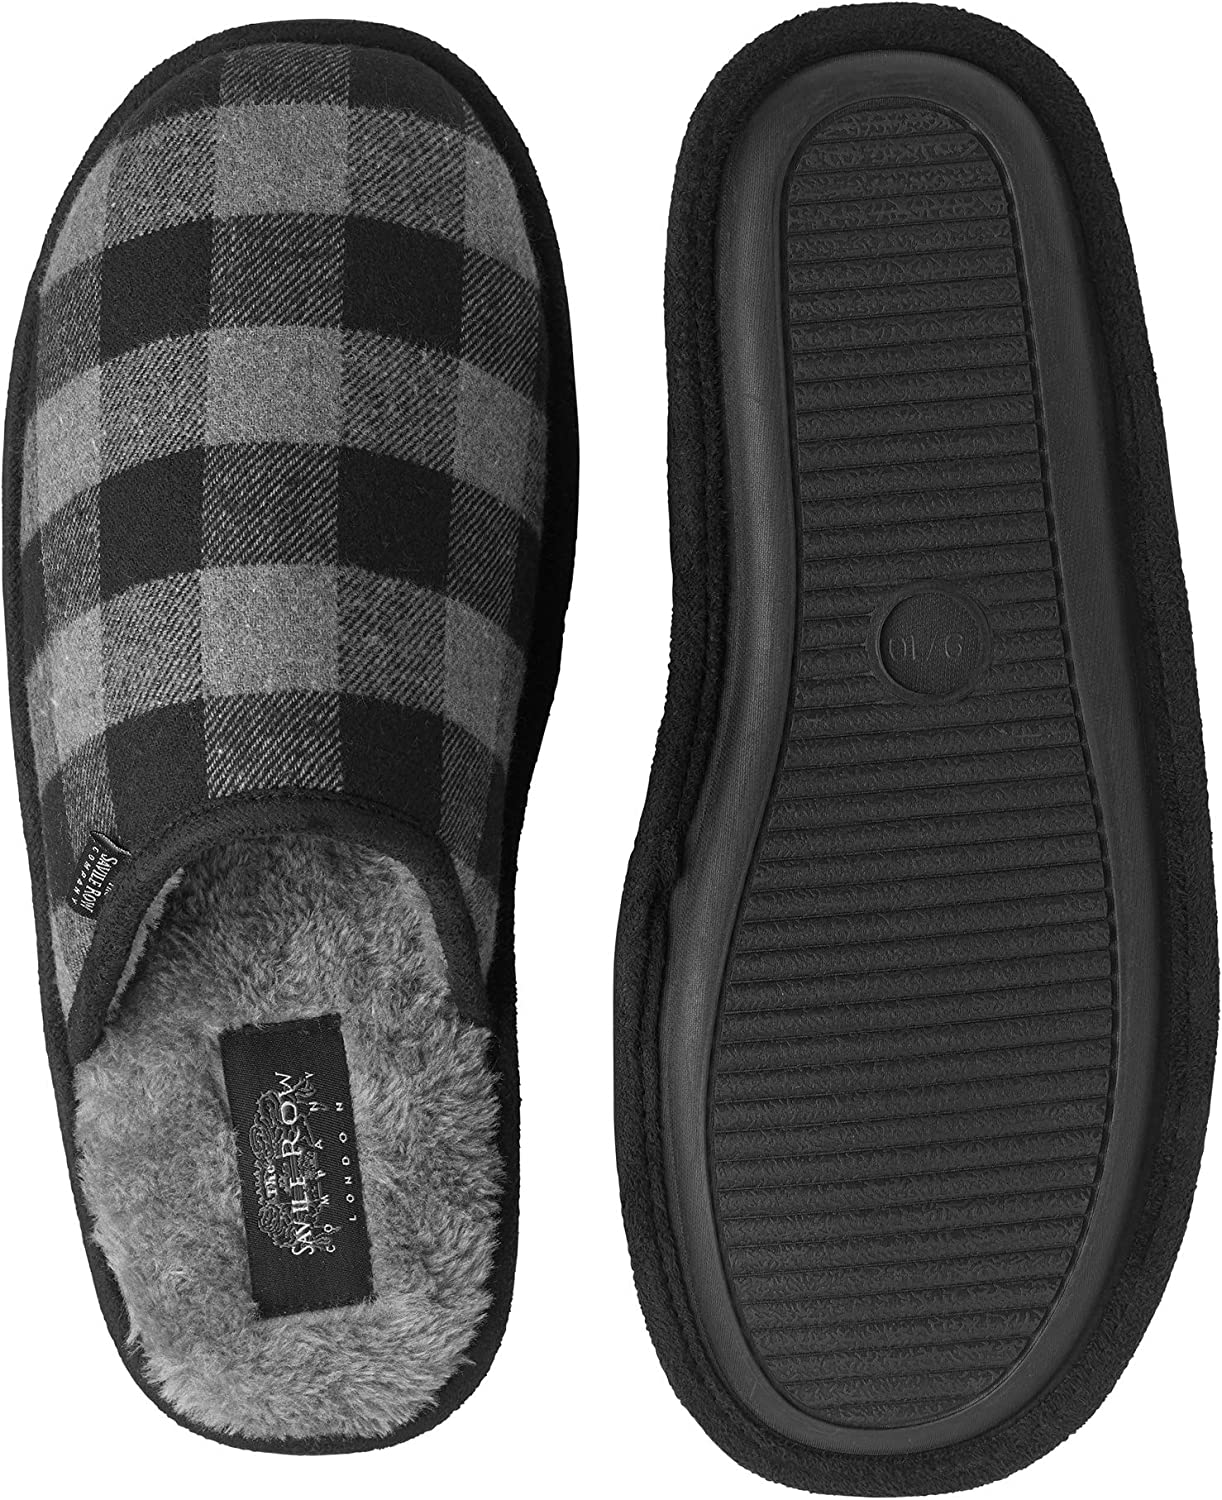 Savile Row Men's Black Check Mule Slippers 7/8